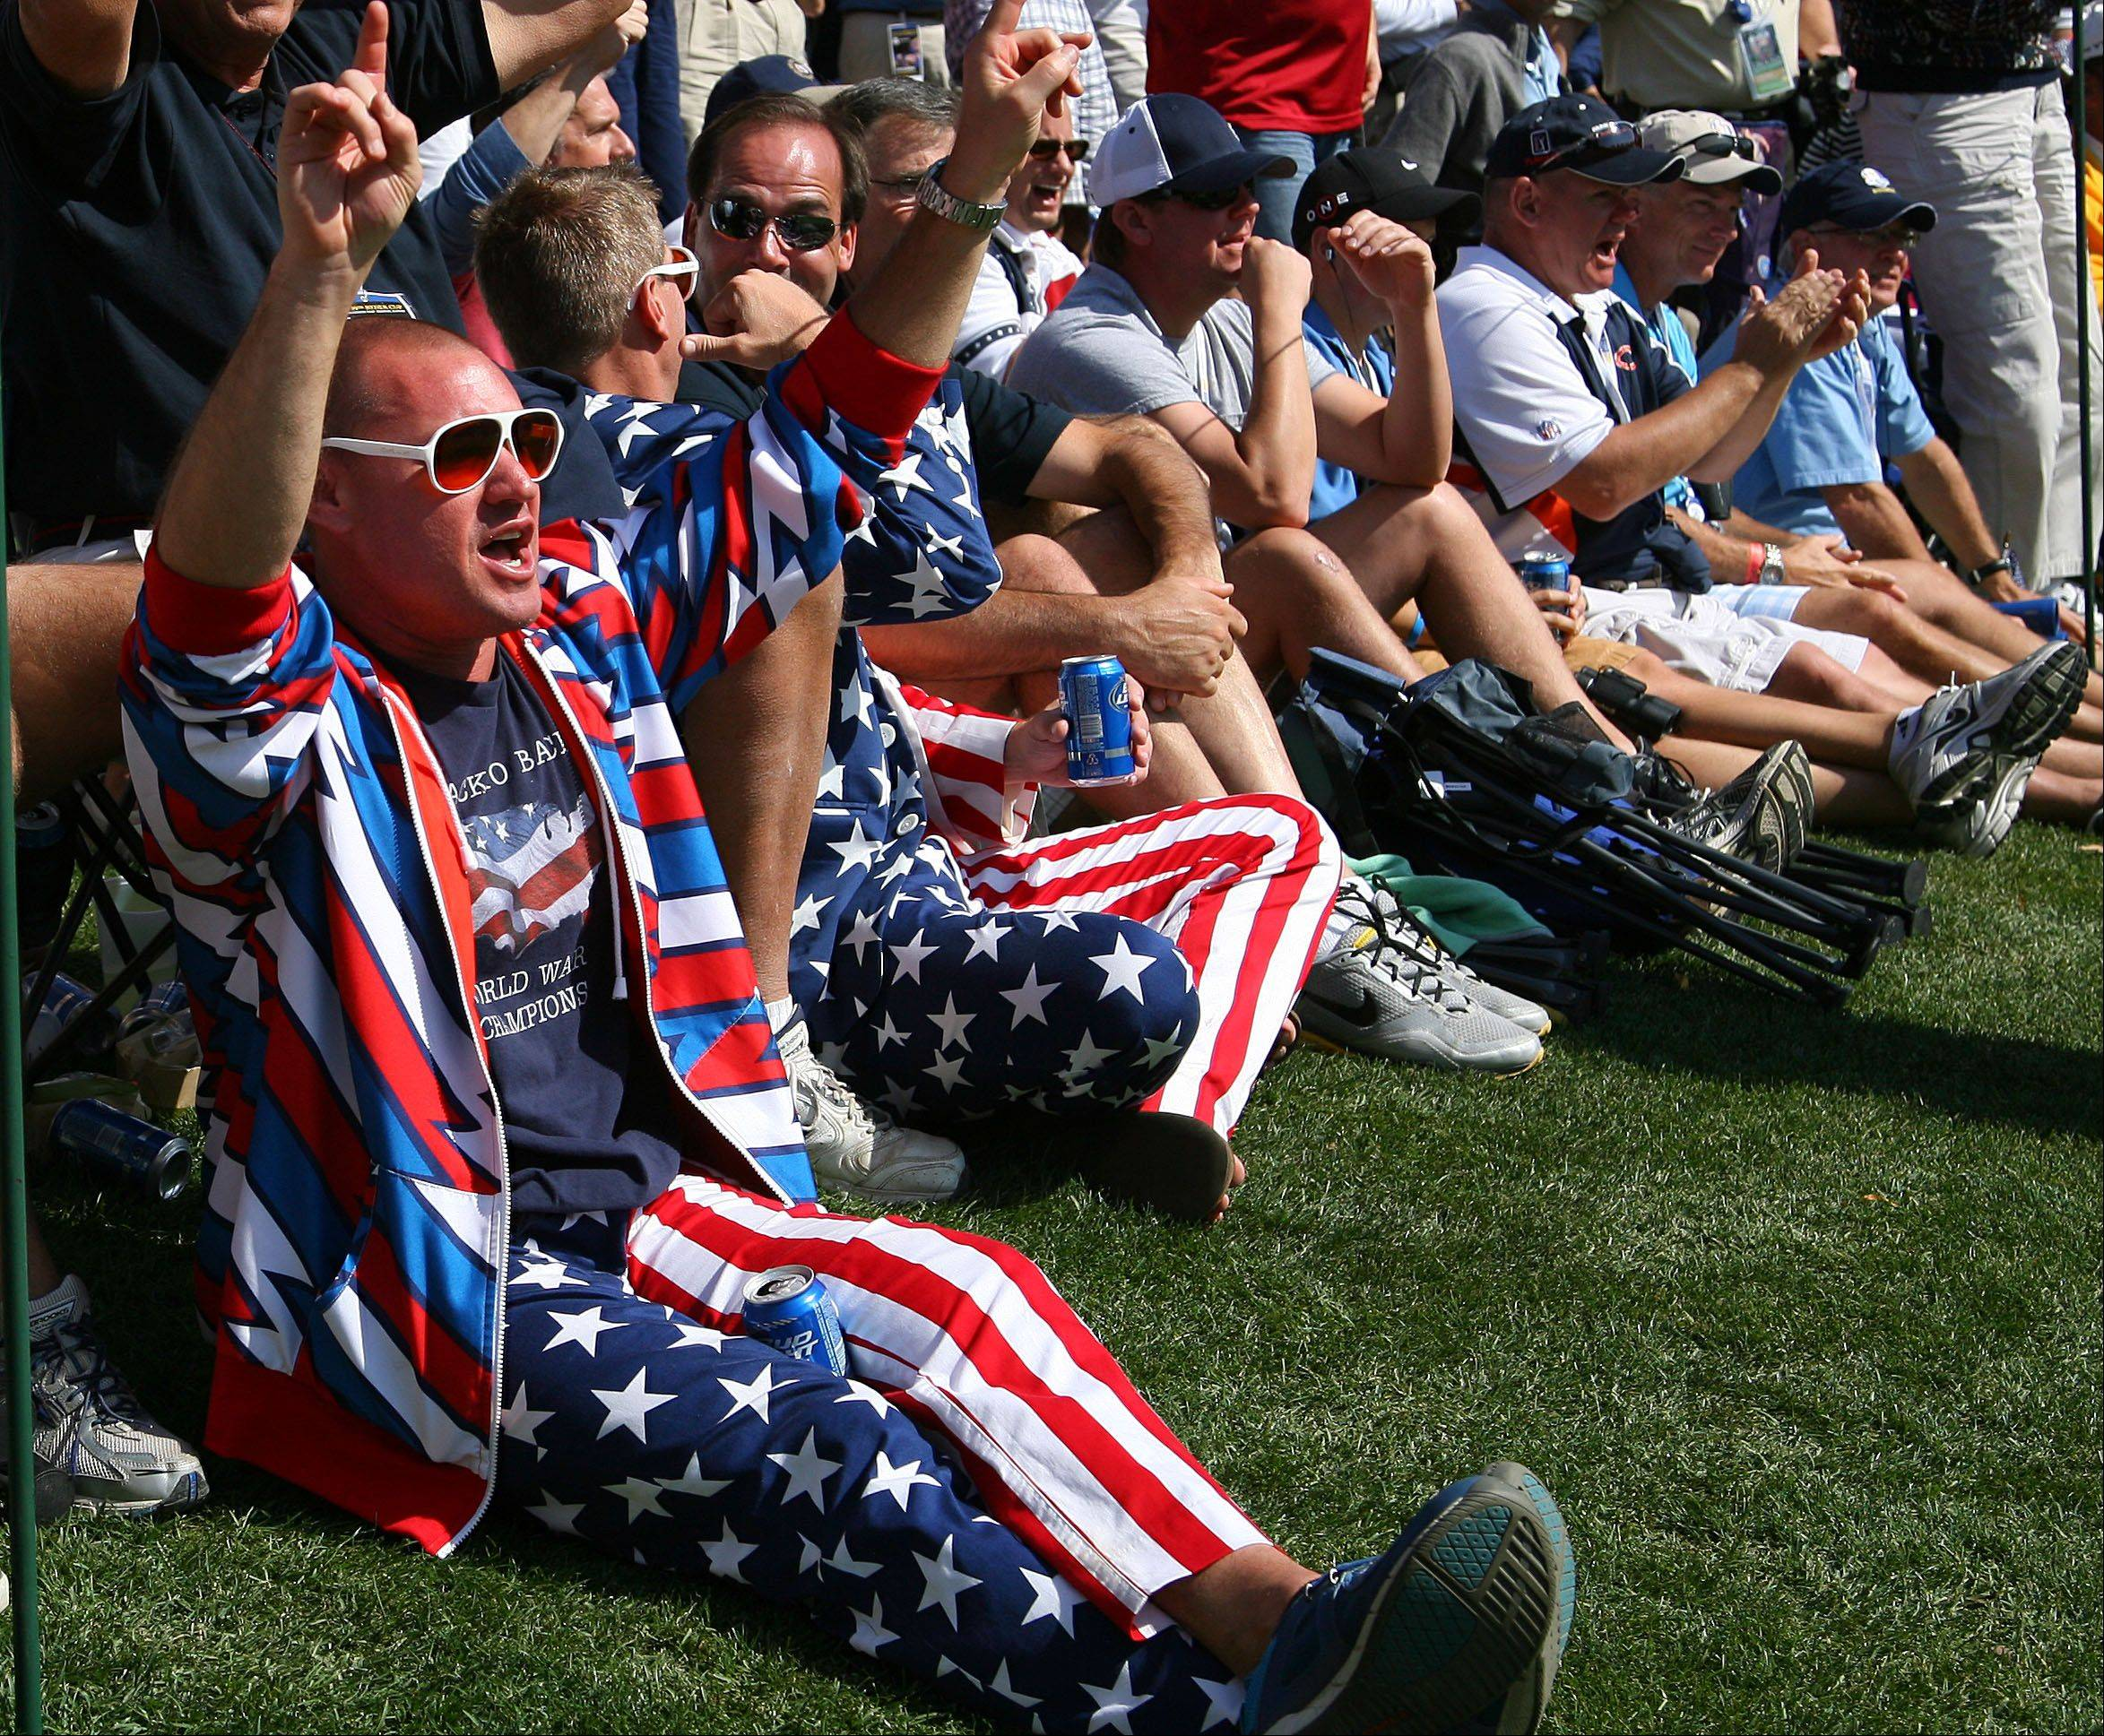 Fans sport their flag outfits on the 17th green during the morning matches on day 2 of the Ryder Cup at Medinah Country Club Saturday.